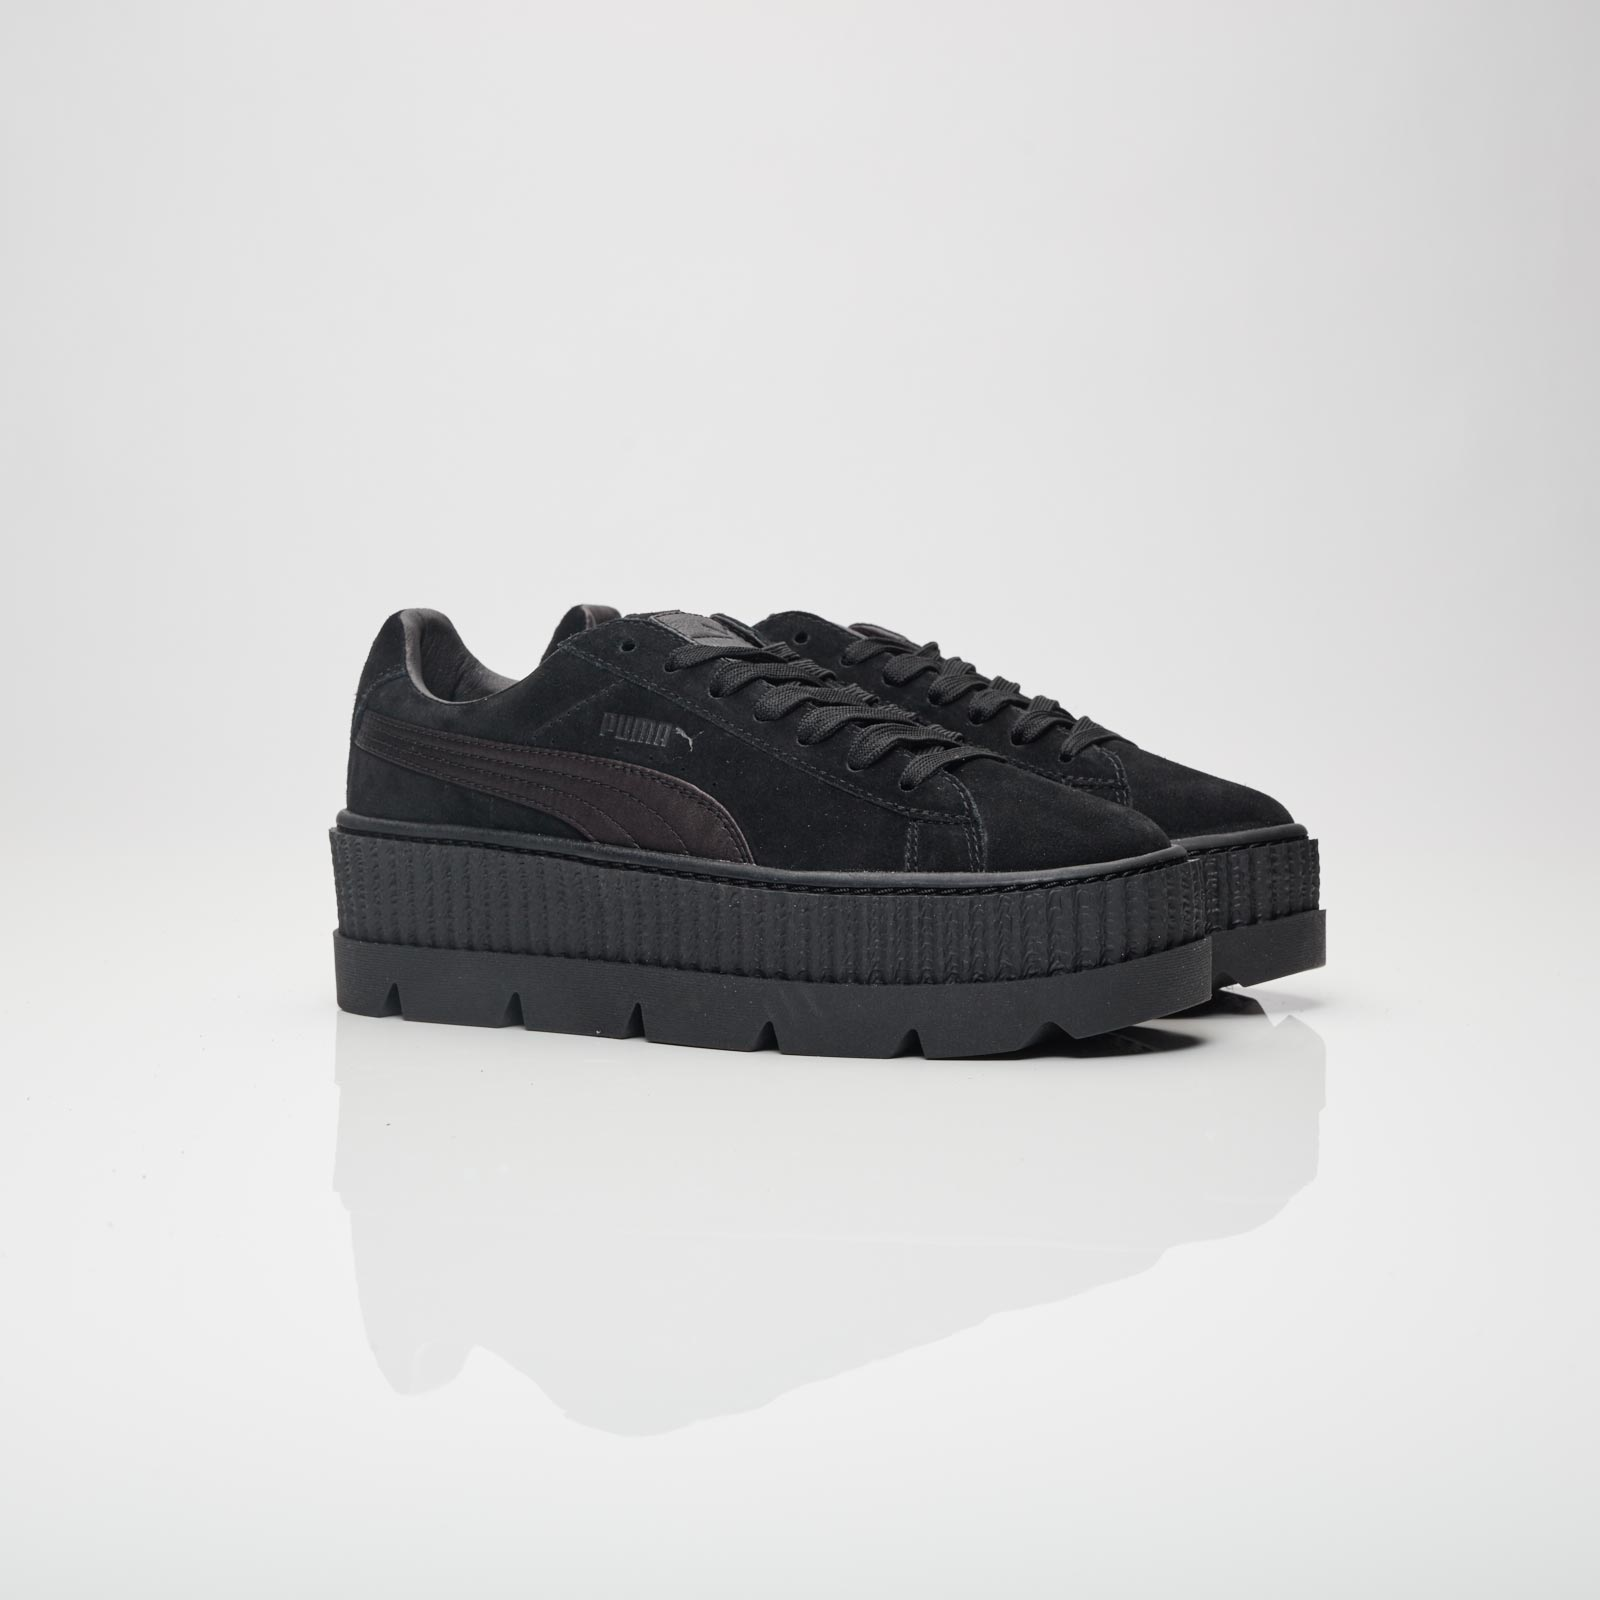 size 40 f61f8 96cf4 Puma Cleated Creeper Suede Wns - 366268-04 - Sneakersnstuff ...